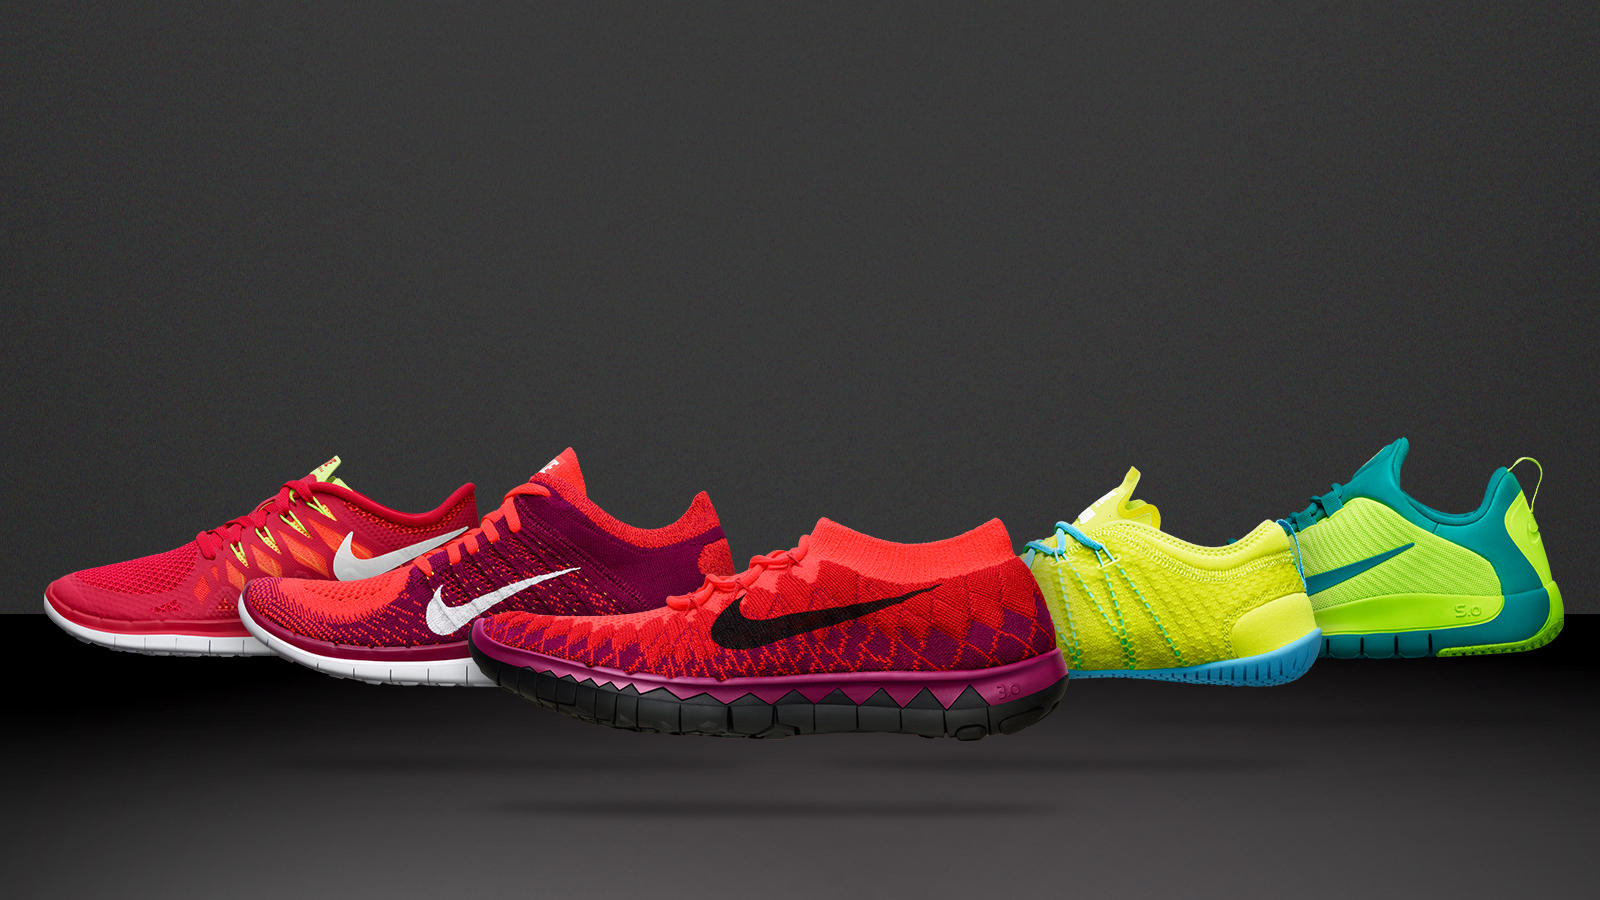 Experience the Nike Free journey. Share Image